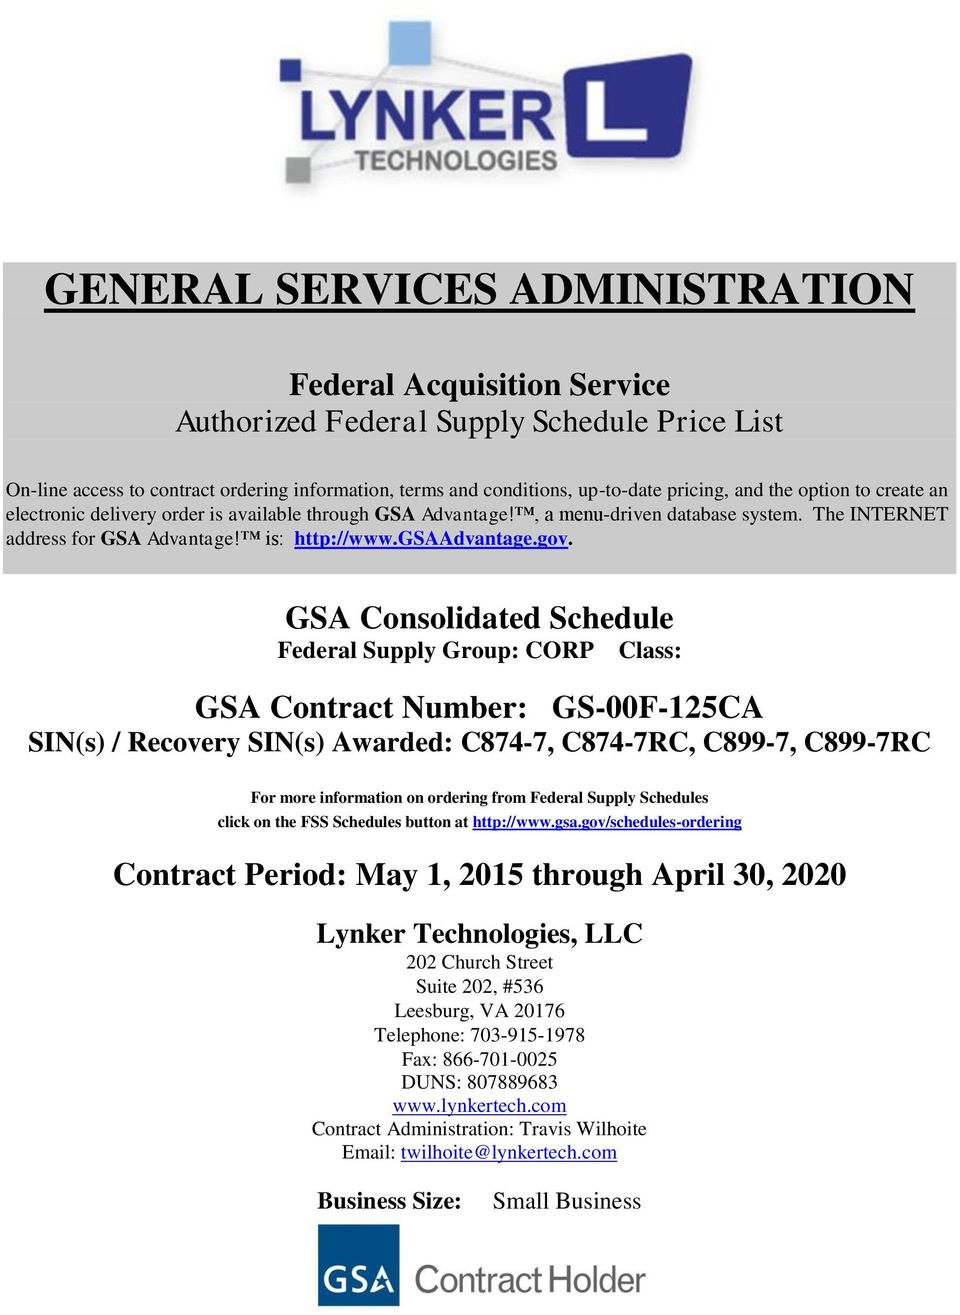 GSA Consolidated Schedule Federal Supply Group: CORP Class: GSA Contract Number: GS-00F-125CA SIN(s) / Recovery SIN(s) Awarded: C874-7, C874-7RC, C899-7, C899-7RC For more information on ordering